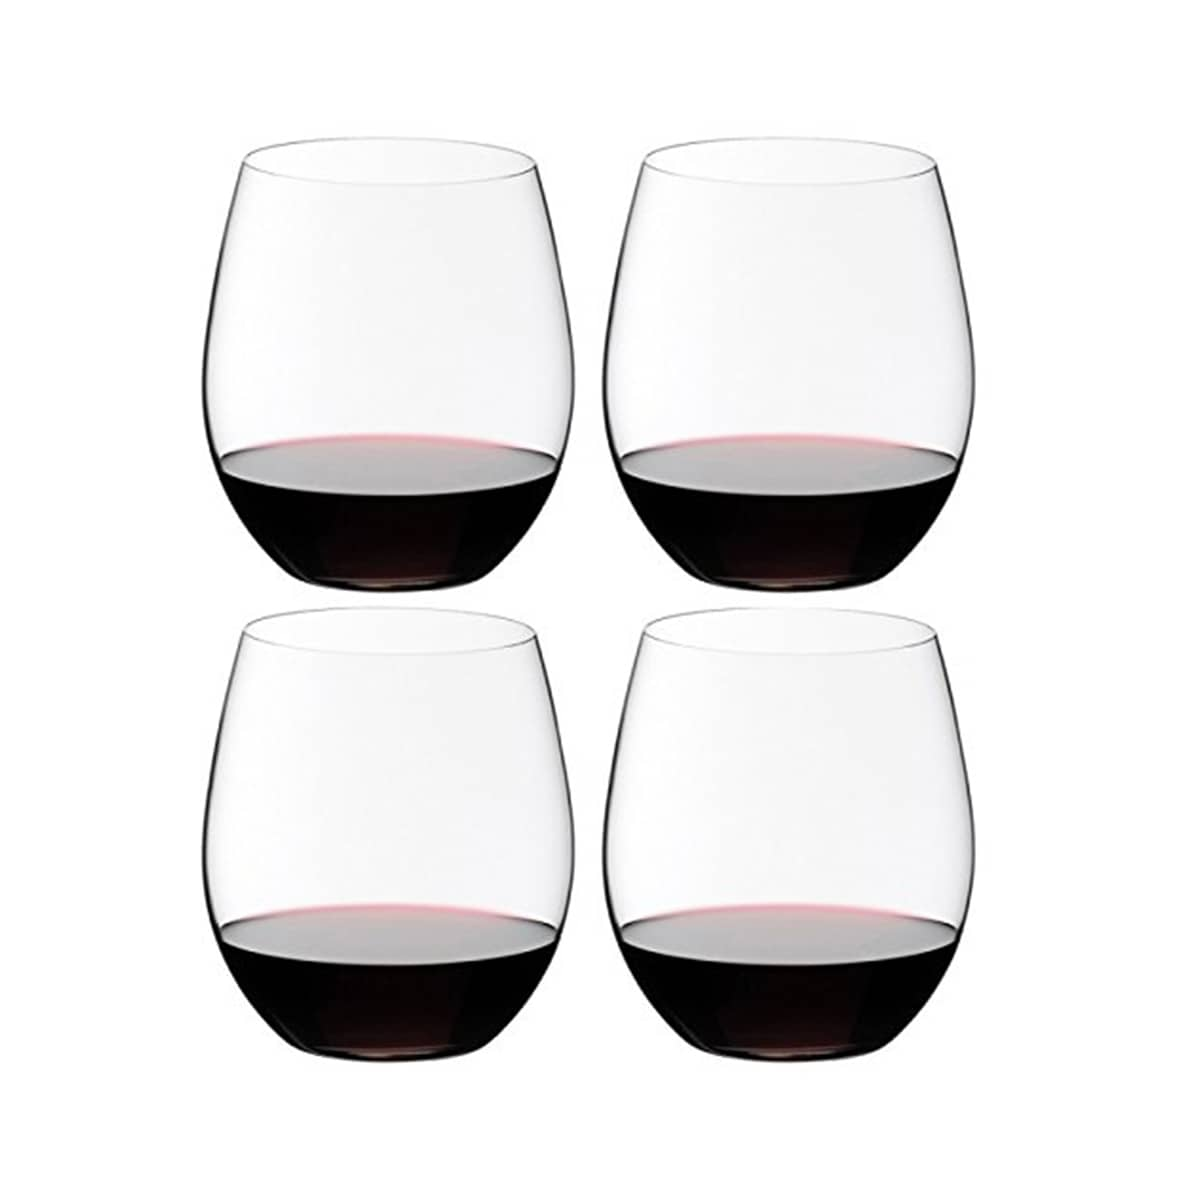 10 Wine Glasses That Can Go in the Dishwasher: gallery image 4